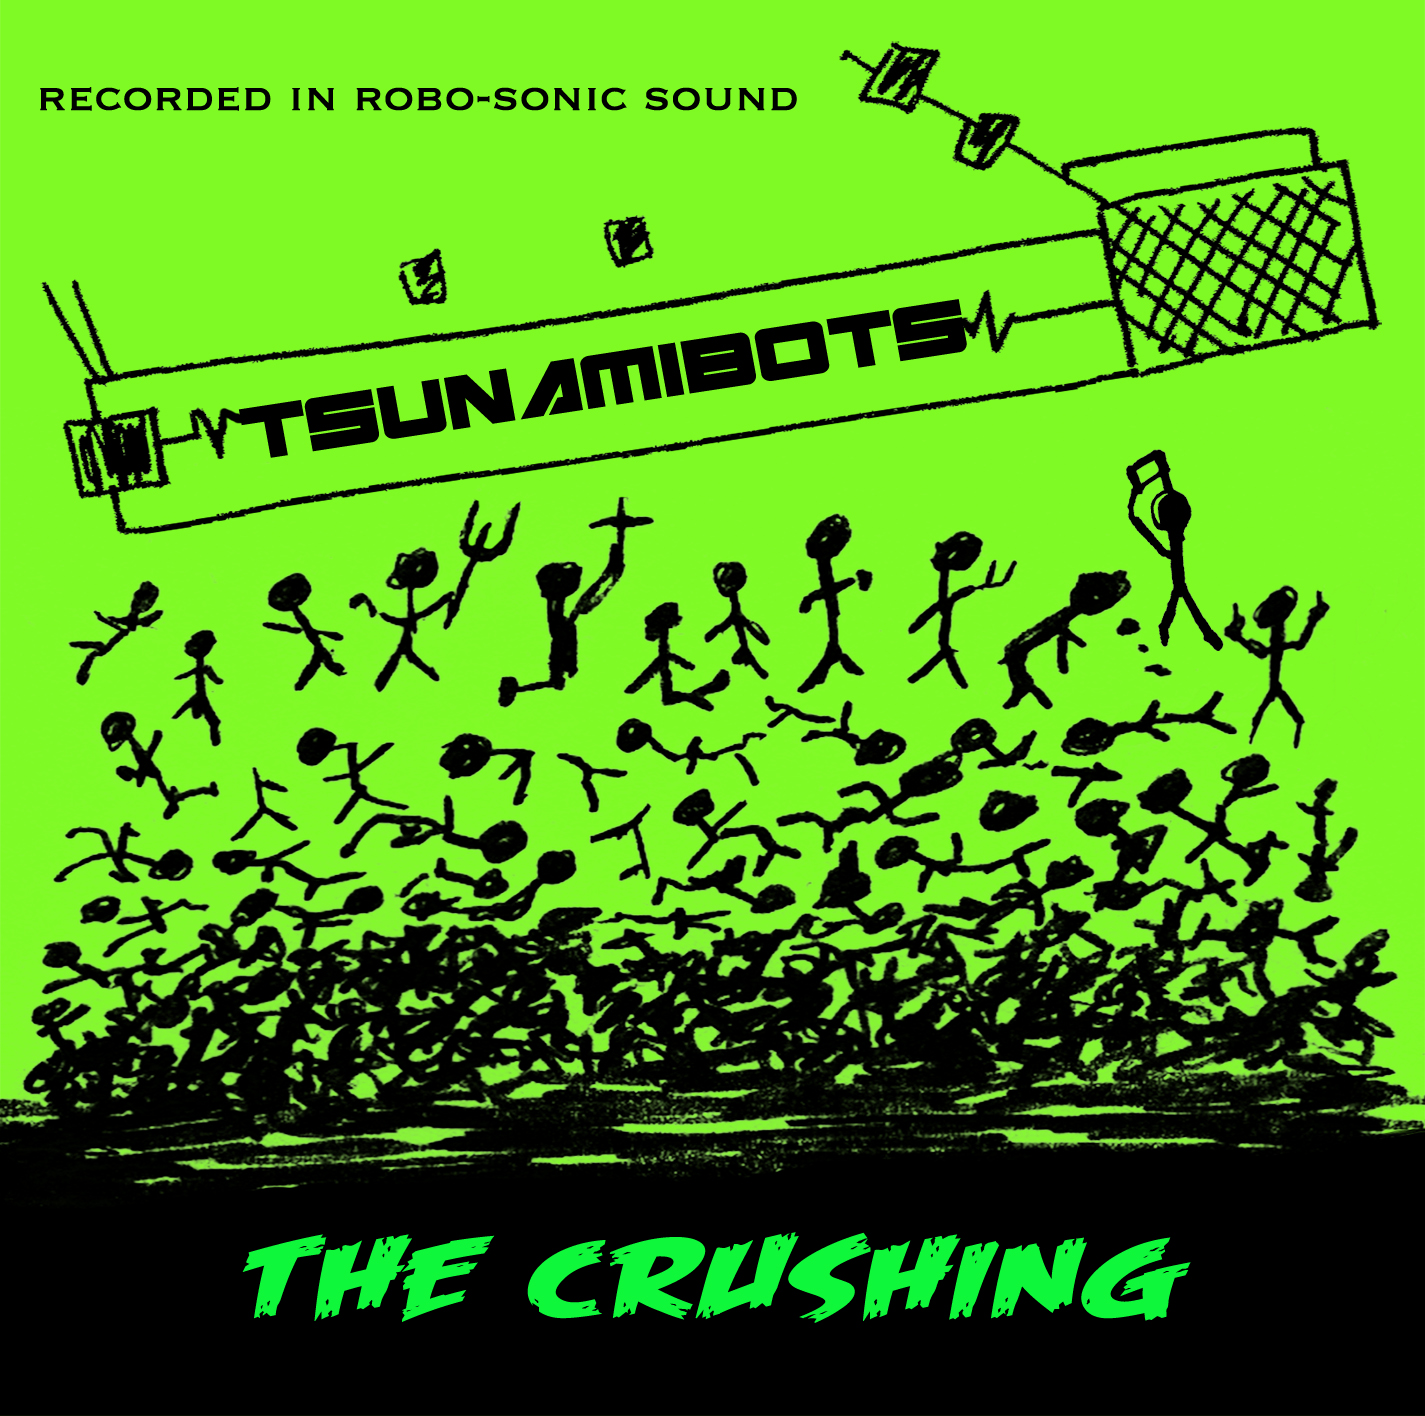 SRW011 The Tsunamibots - The Crushing (Digital Download) Image